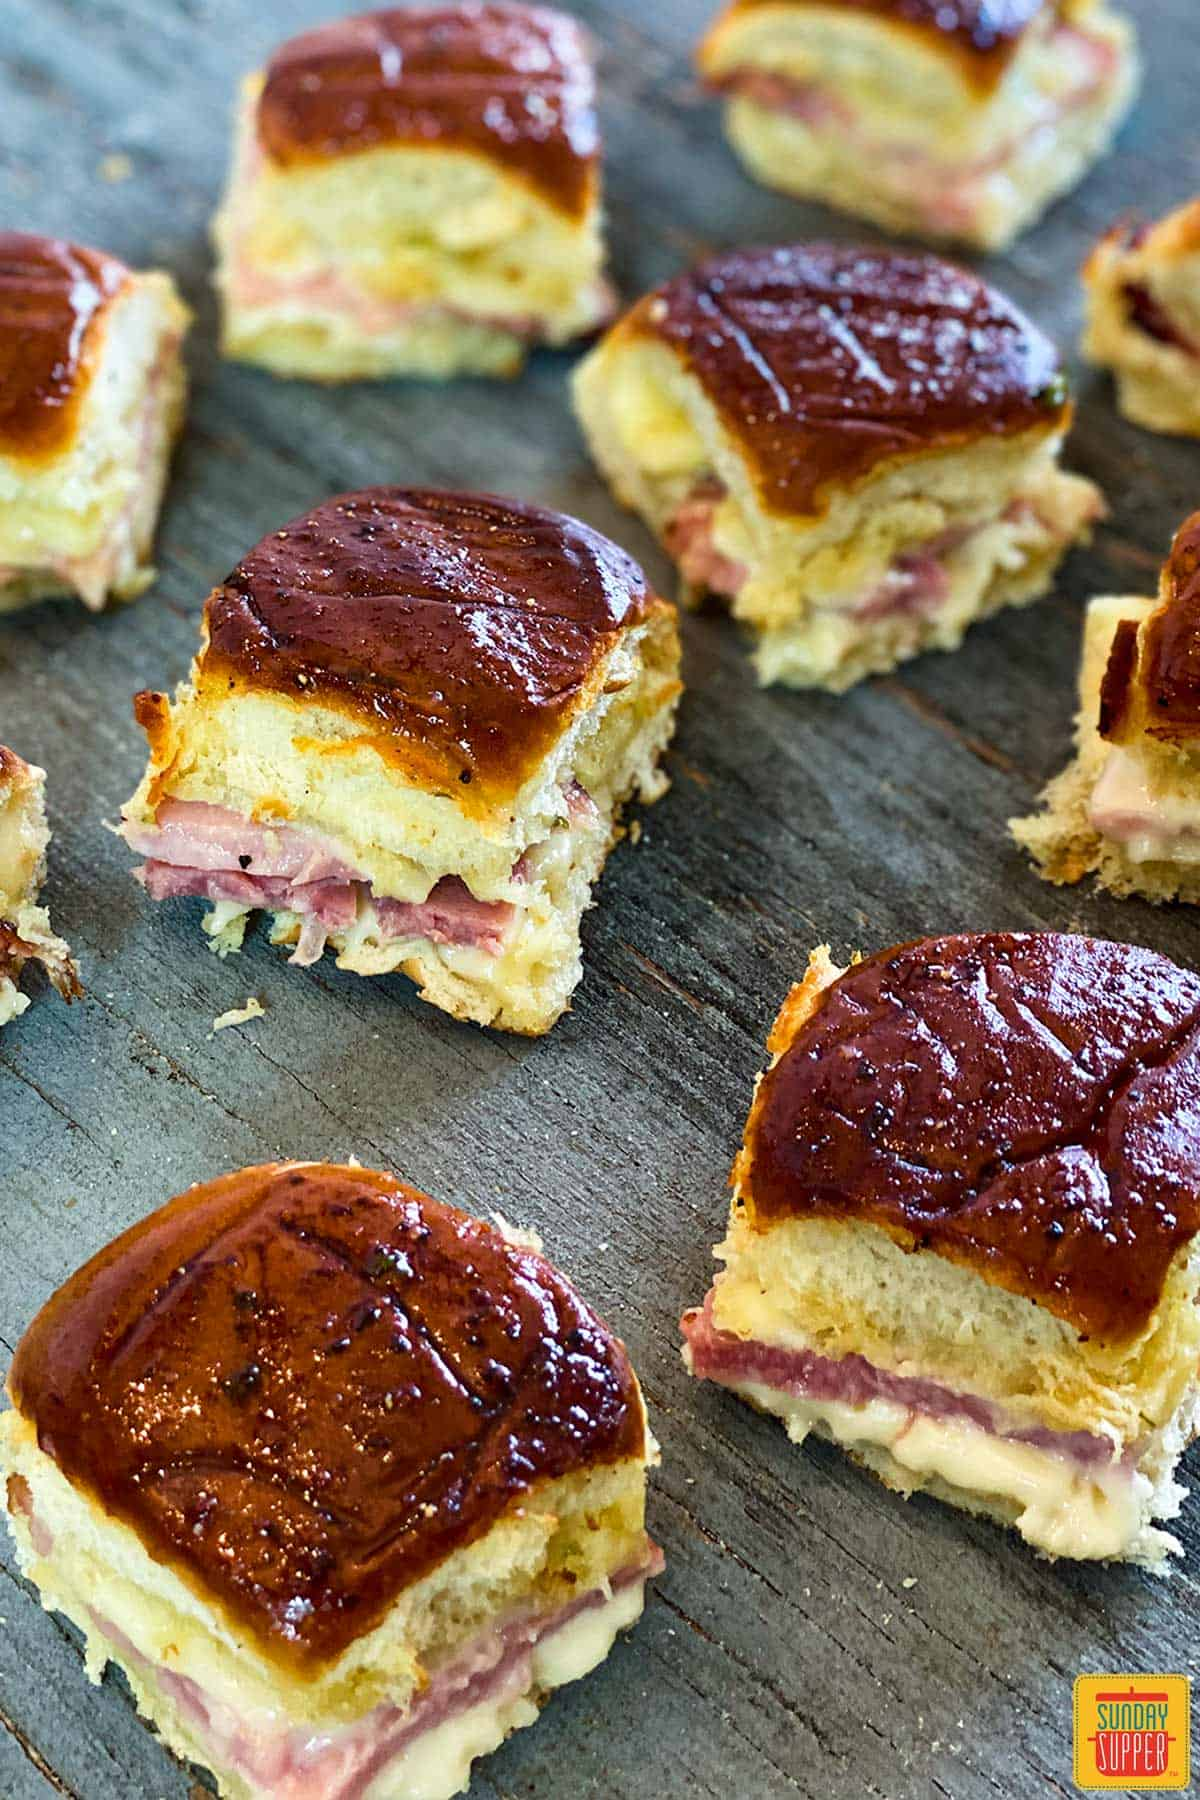 Many ham and cheese sliders on a blue wooden surface with beautifully browned buns